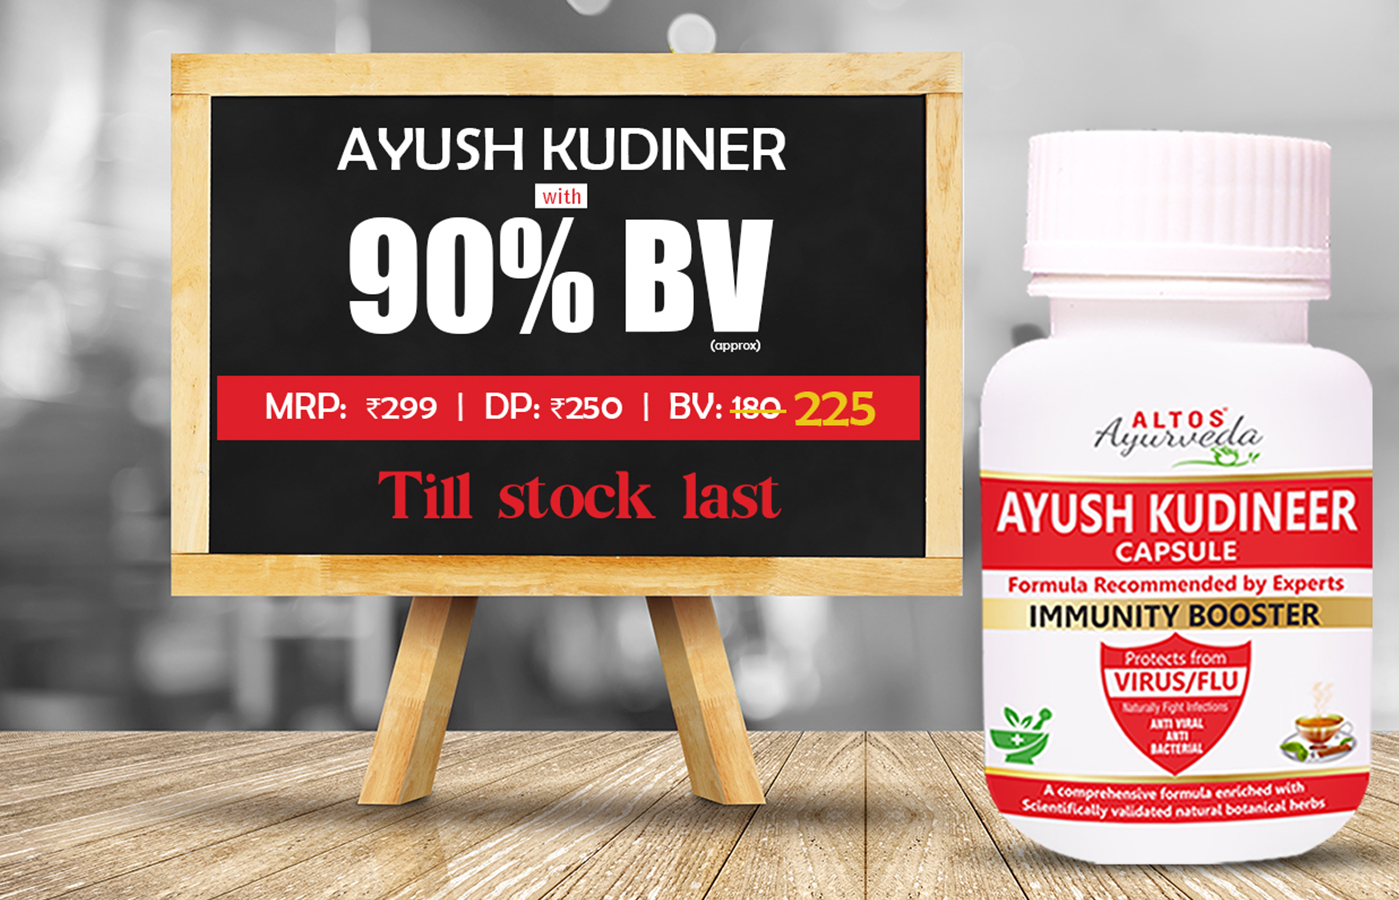 Ayush Kudineer